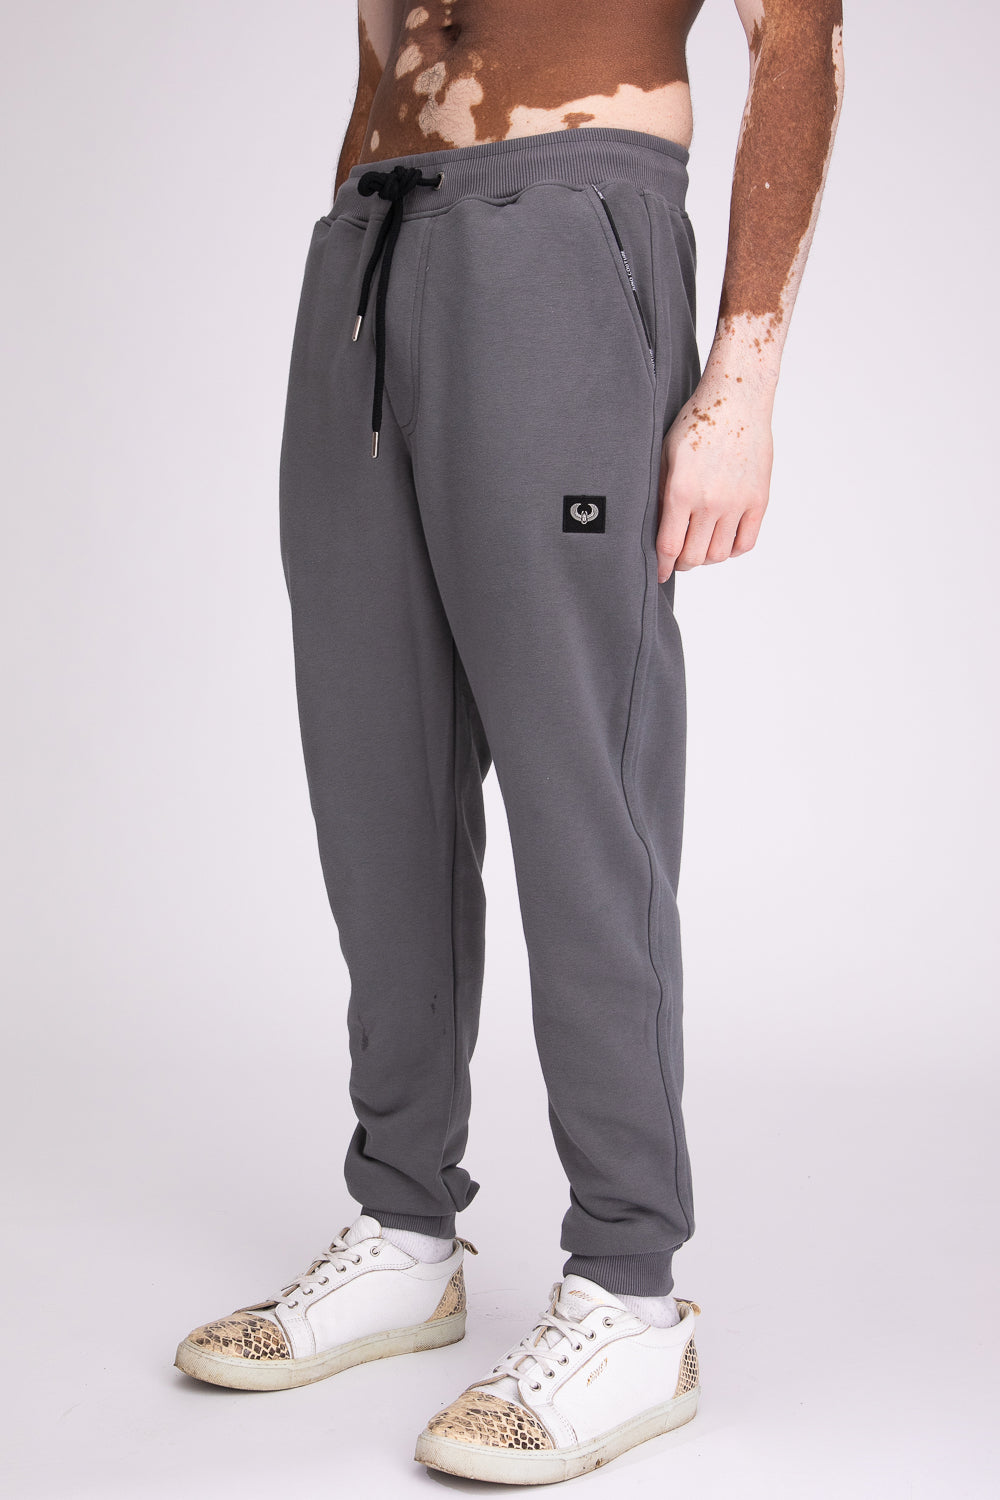 Style: Bricklane Basic Dark Grey Jogger - Junq Couture